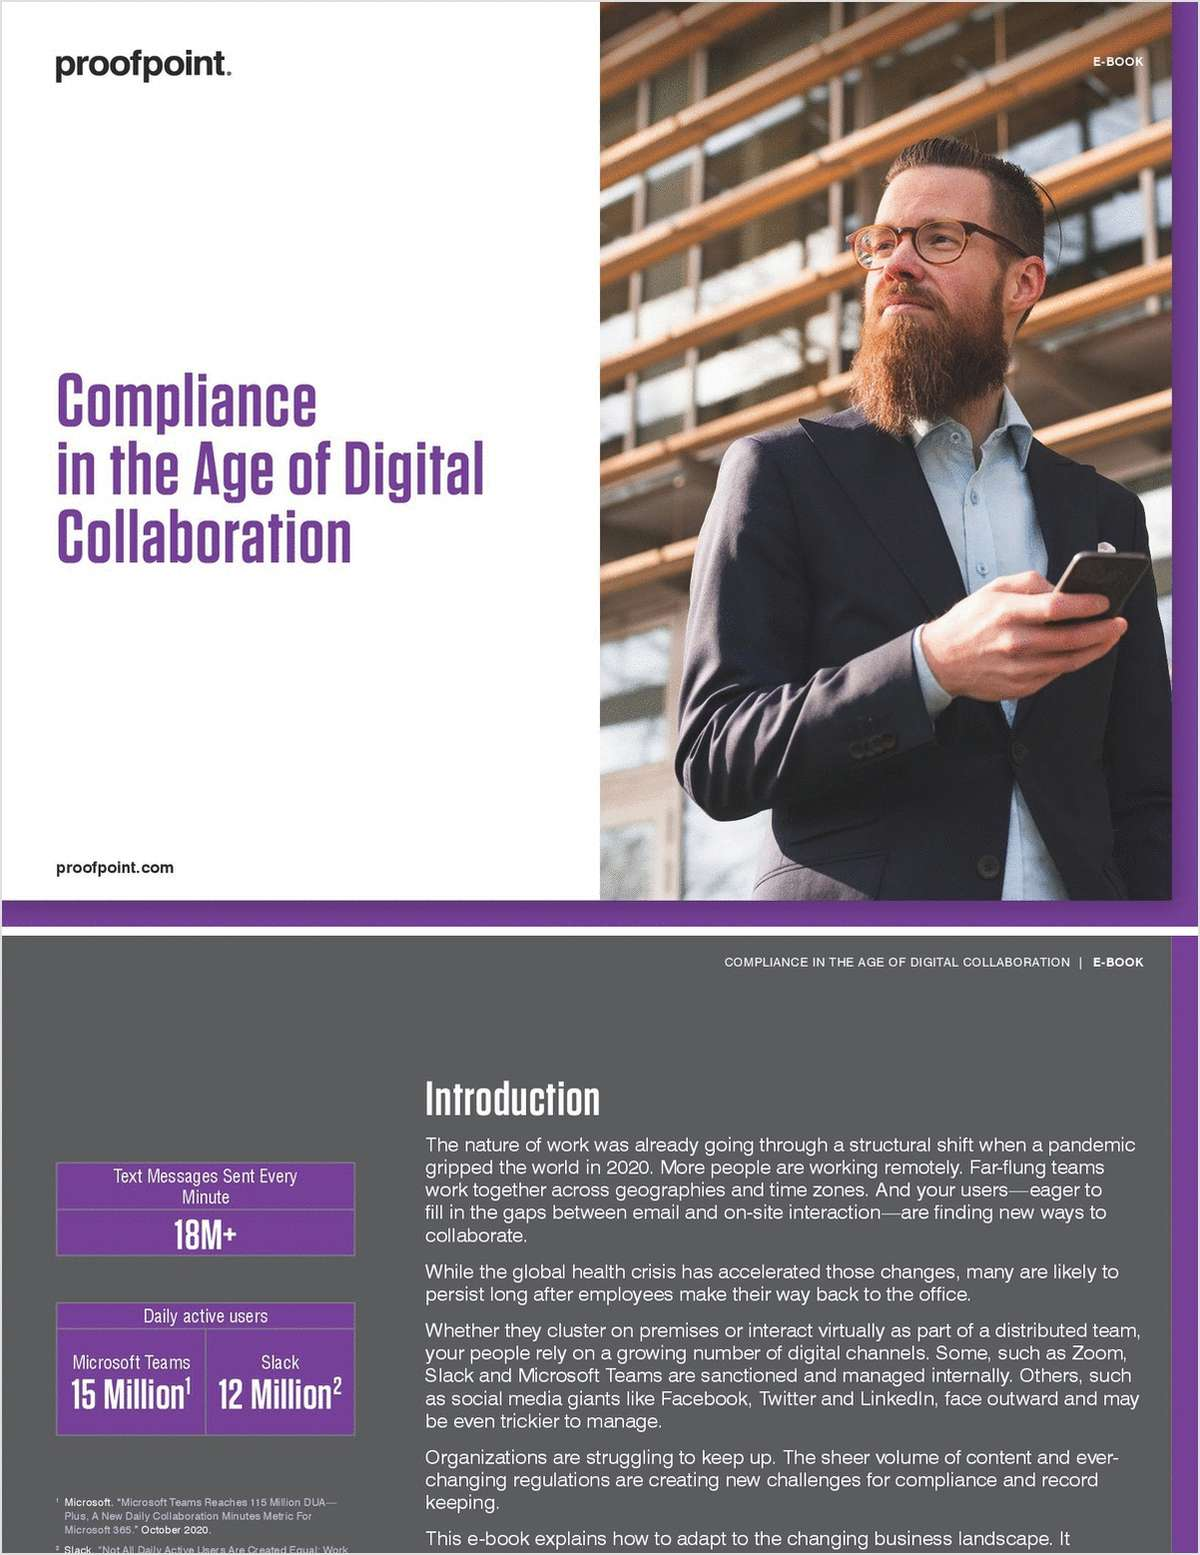 As more people work remotely, organizations are struggling to keep up with the compliance challenges that come along with it. This ebook lays out a roadmap for solving today's thorniest compliance challenges.